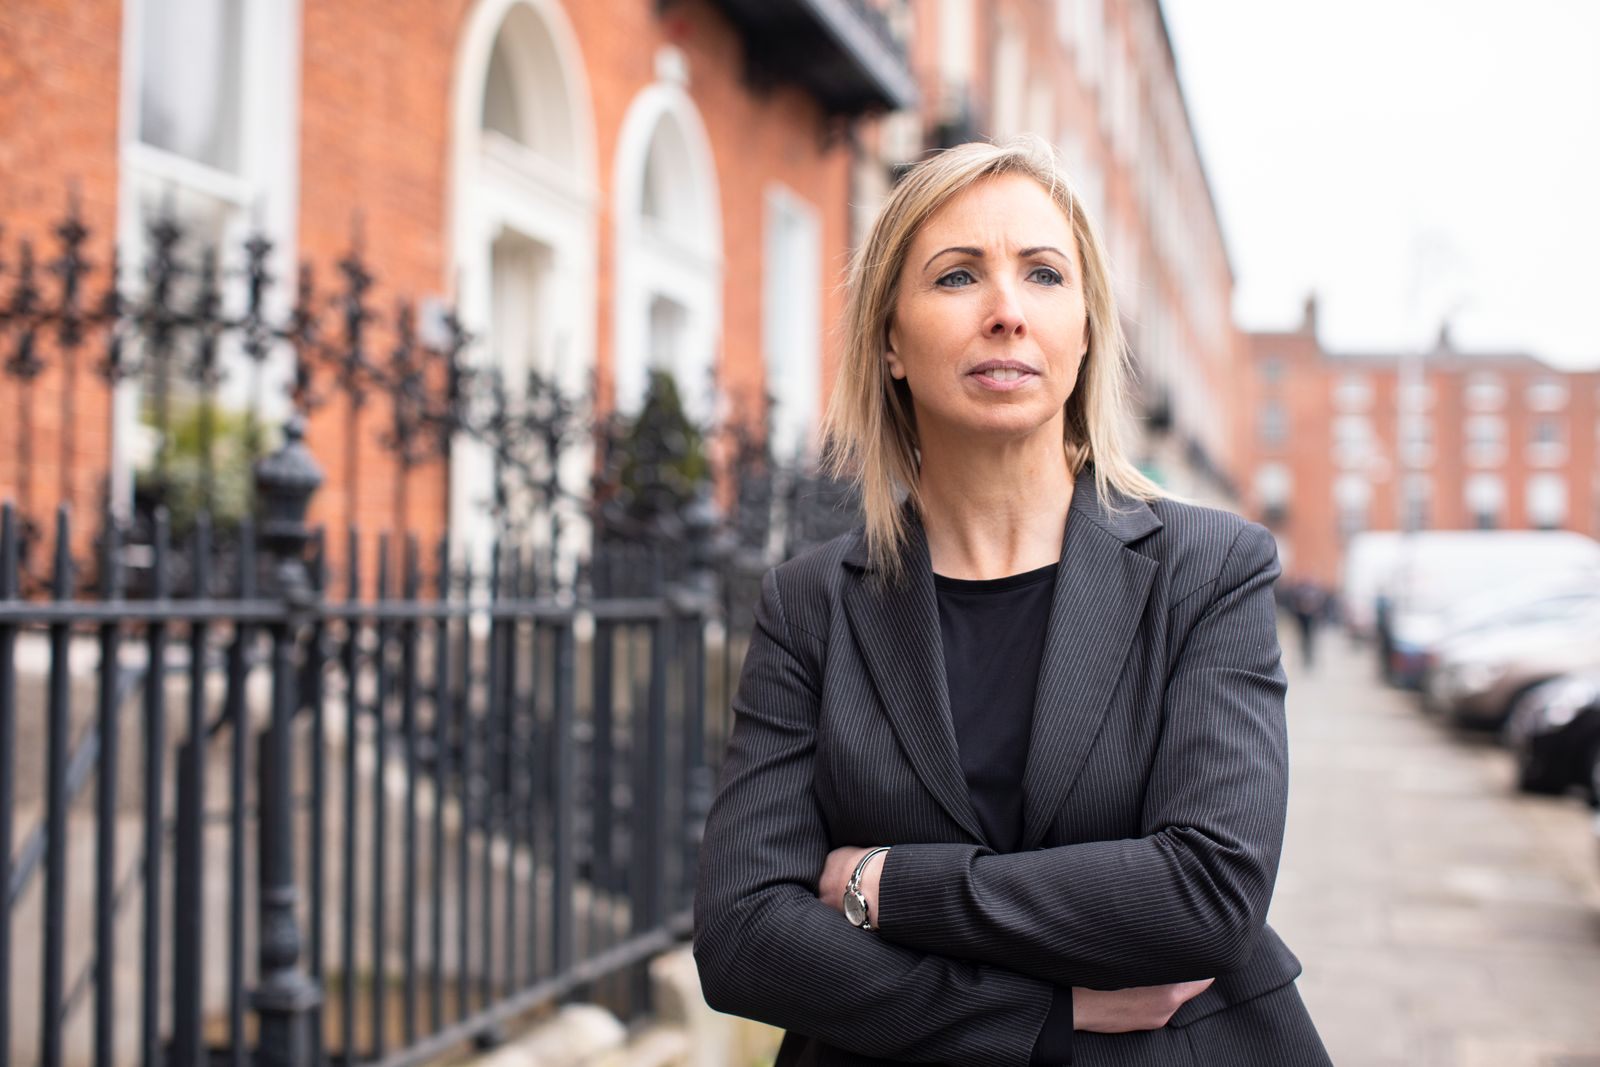 Portrait of Helen Dixon, Data Protection Commissioner for Ireland, photographed for article about Digital Privacy